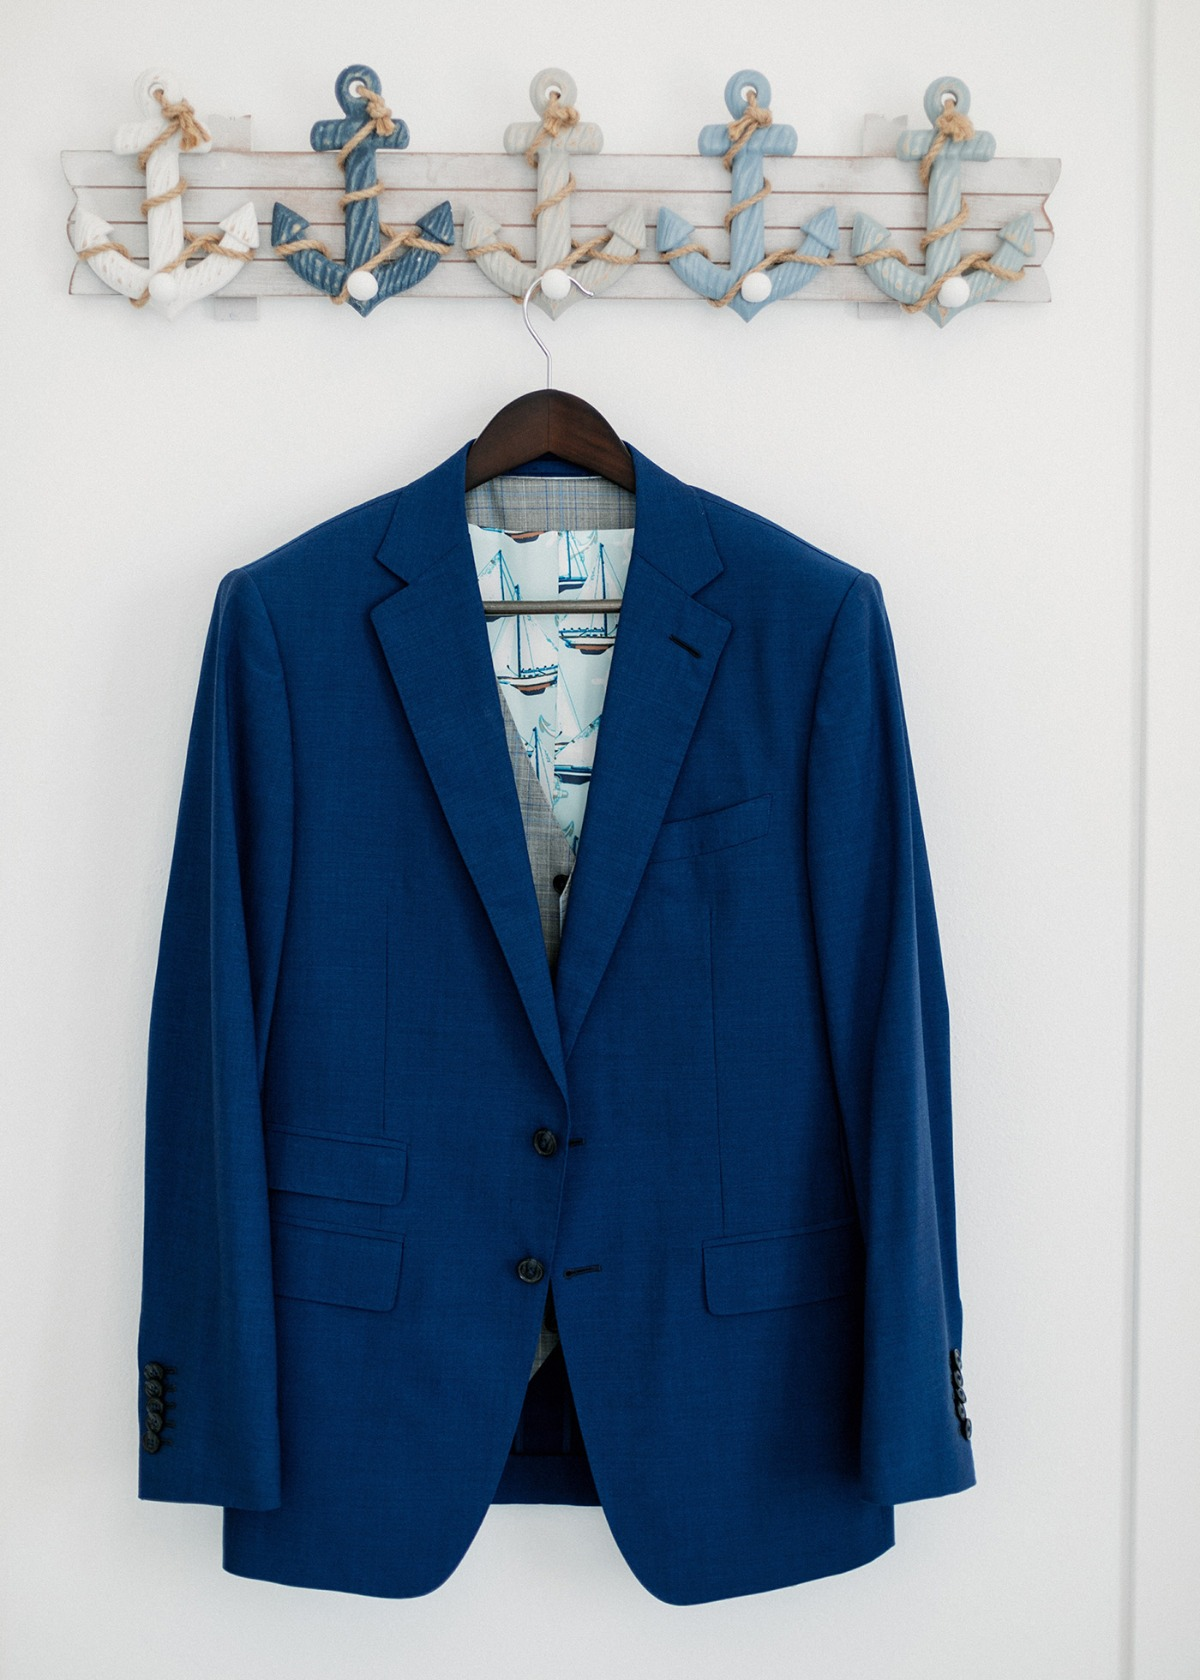 Custom groom suit